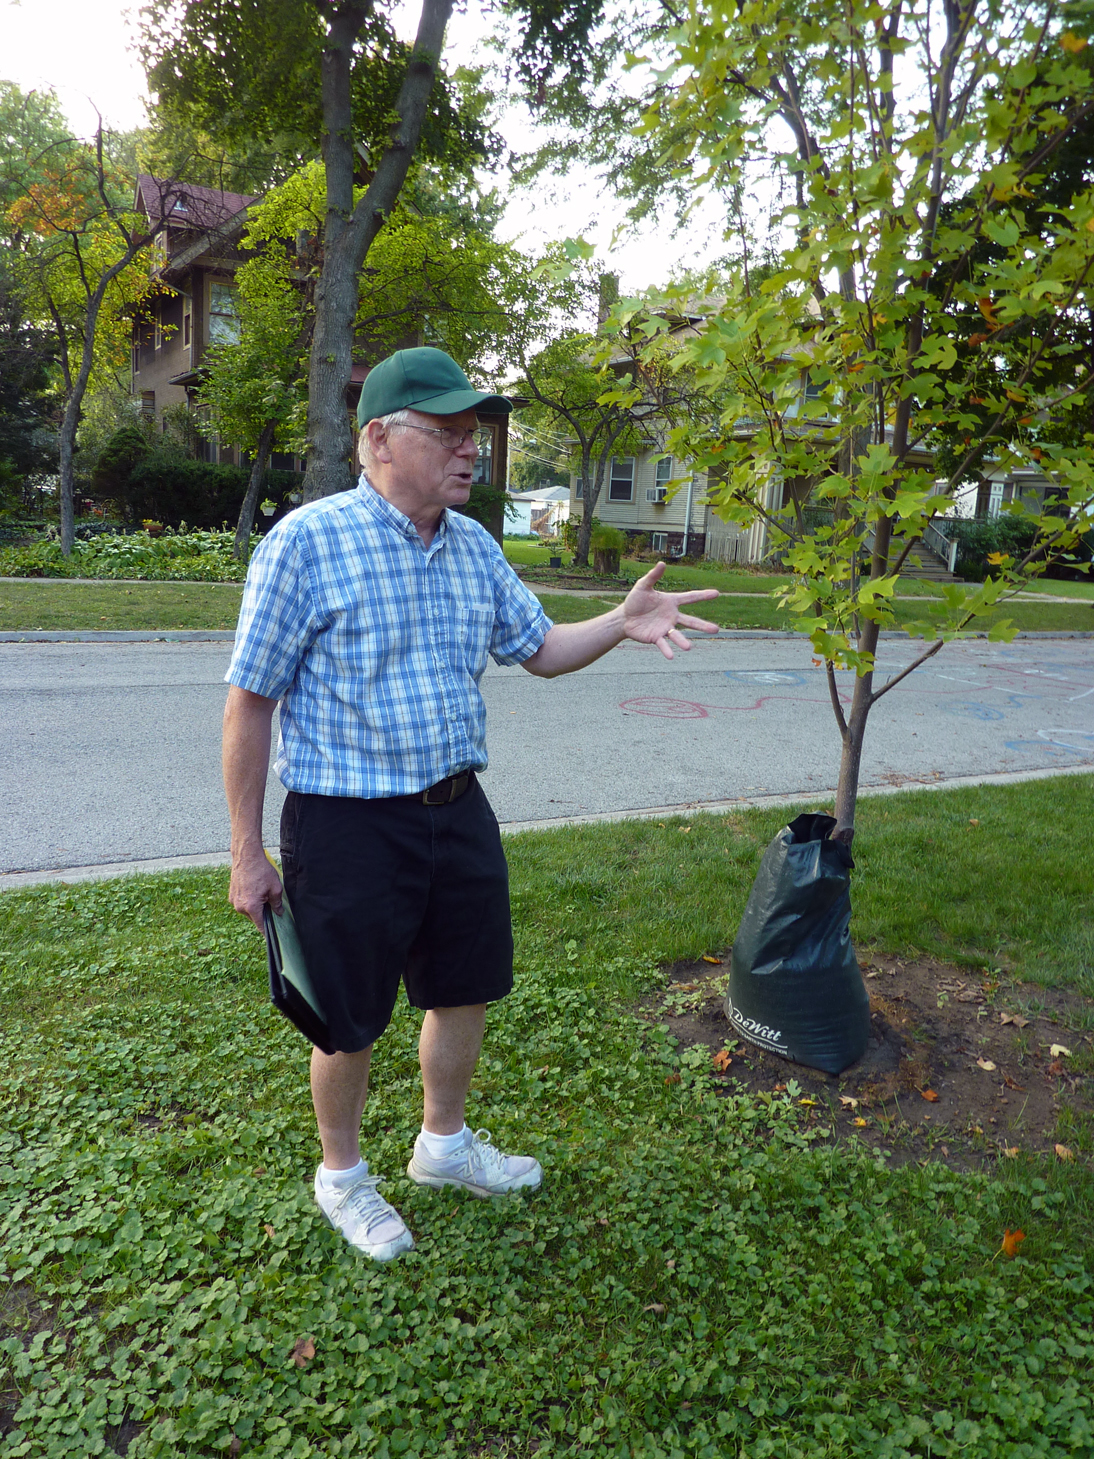 Gordon Waldron of the Learning Gardens shares his respect and affection for trees at local block parties.